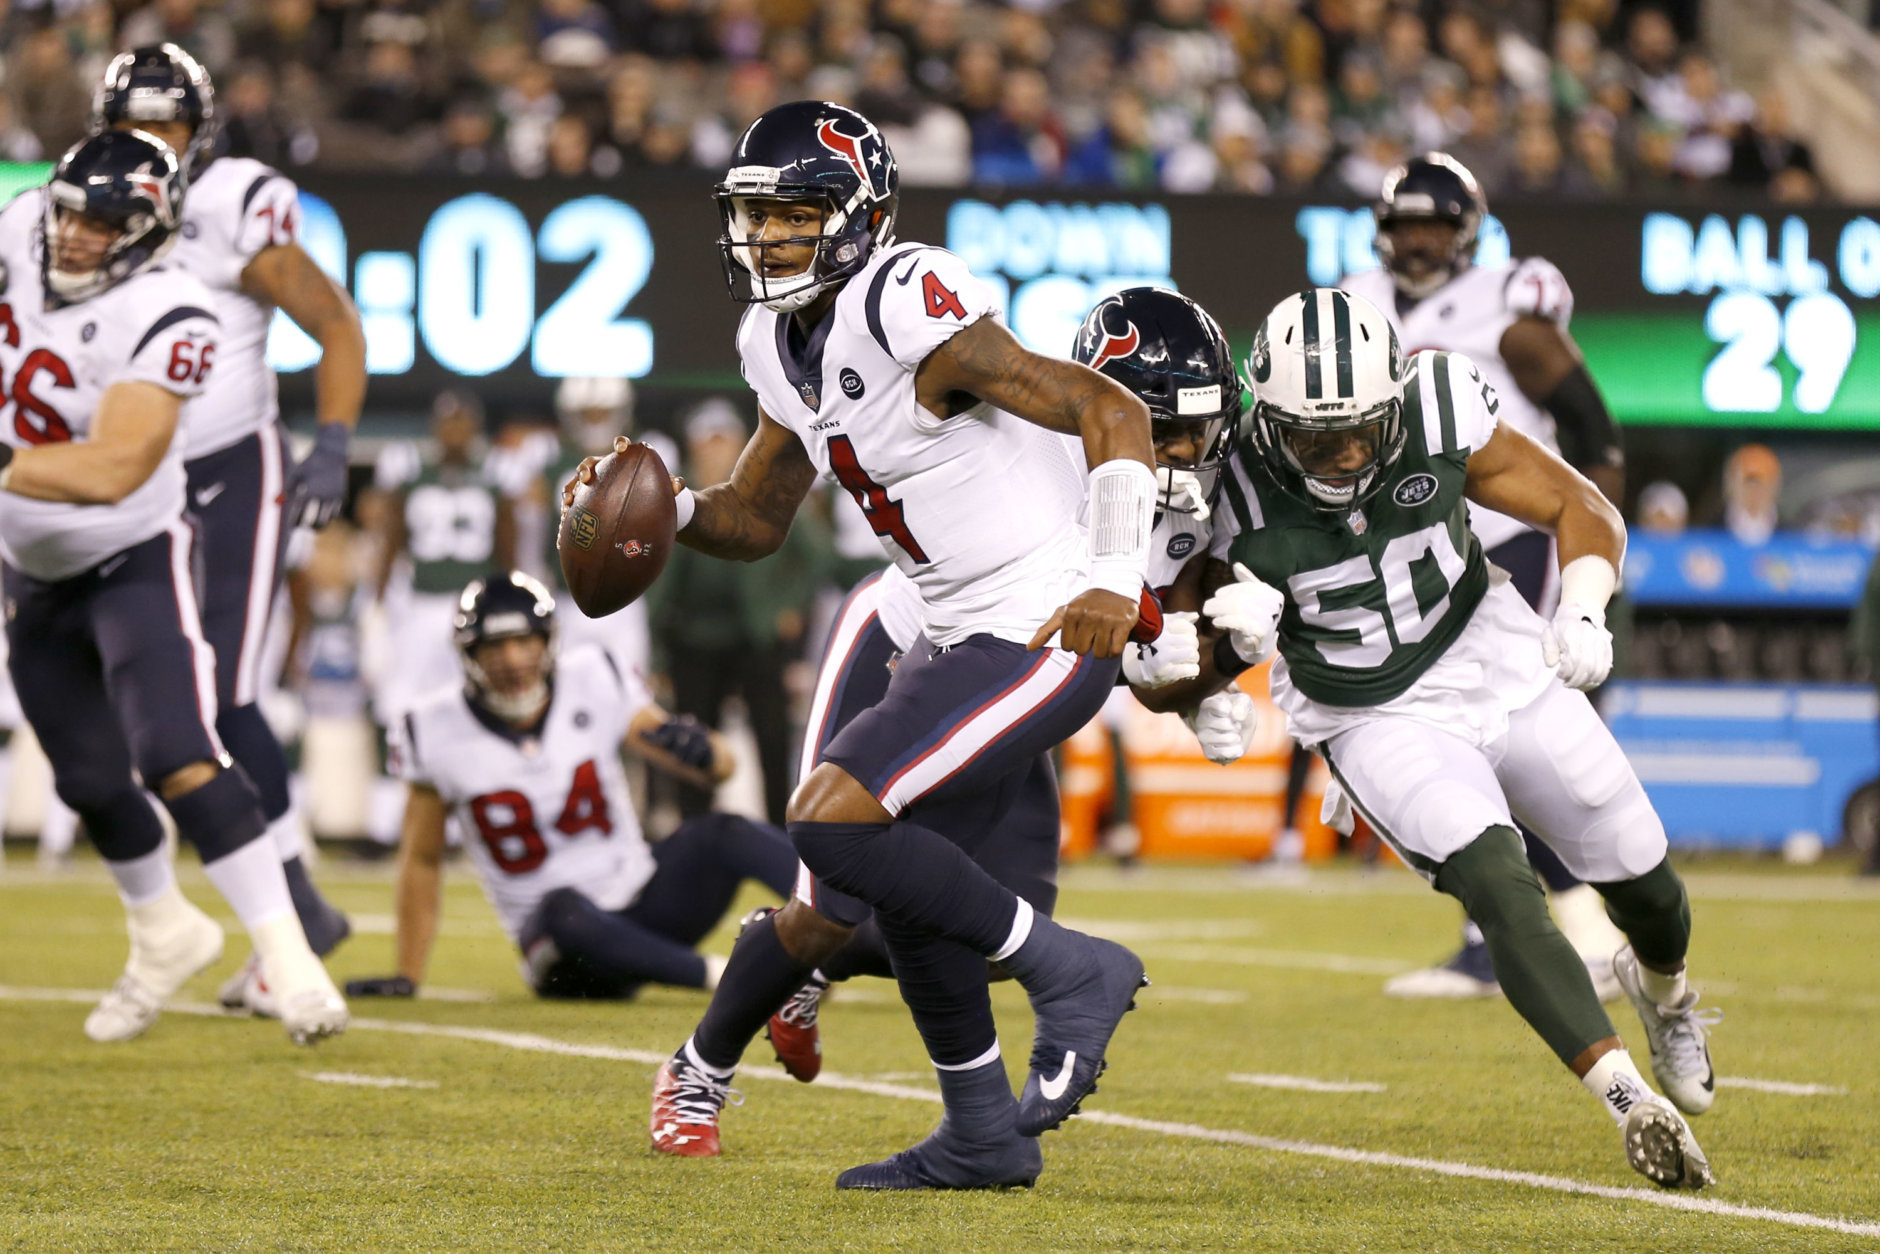 Houston Texans quarterback Deshaun Watson (4) scrambles against the New York Jets during the first half of an NFL football game, Saturday, Dec. 15, 2018, in East Rutherford, N.J. (AP Photo/Adam Hunger)